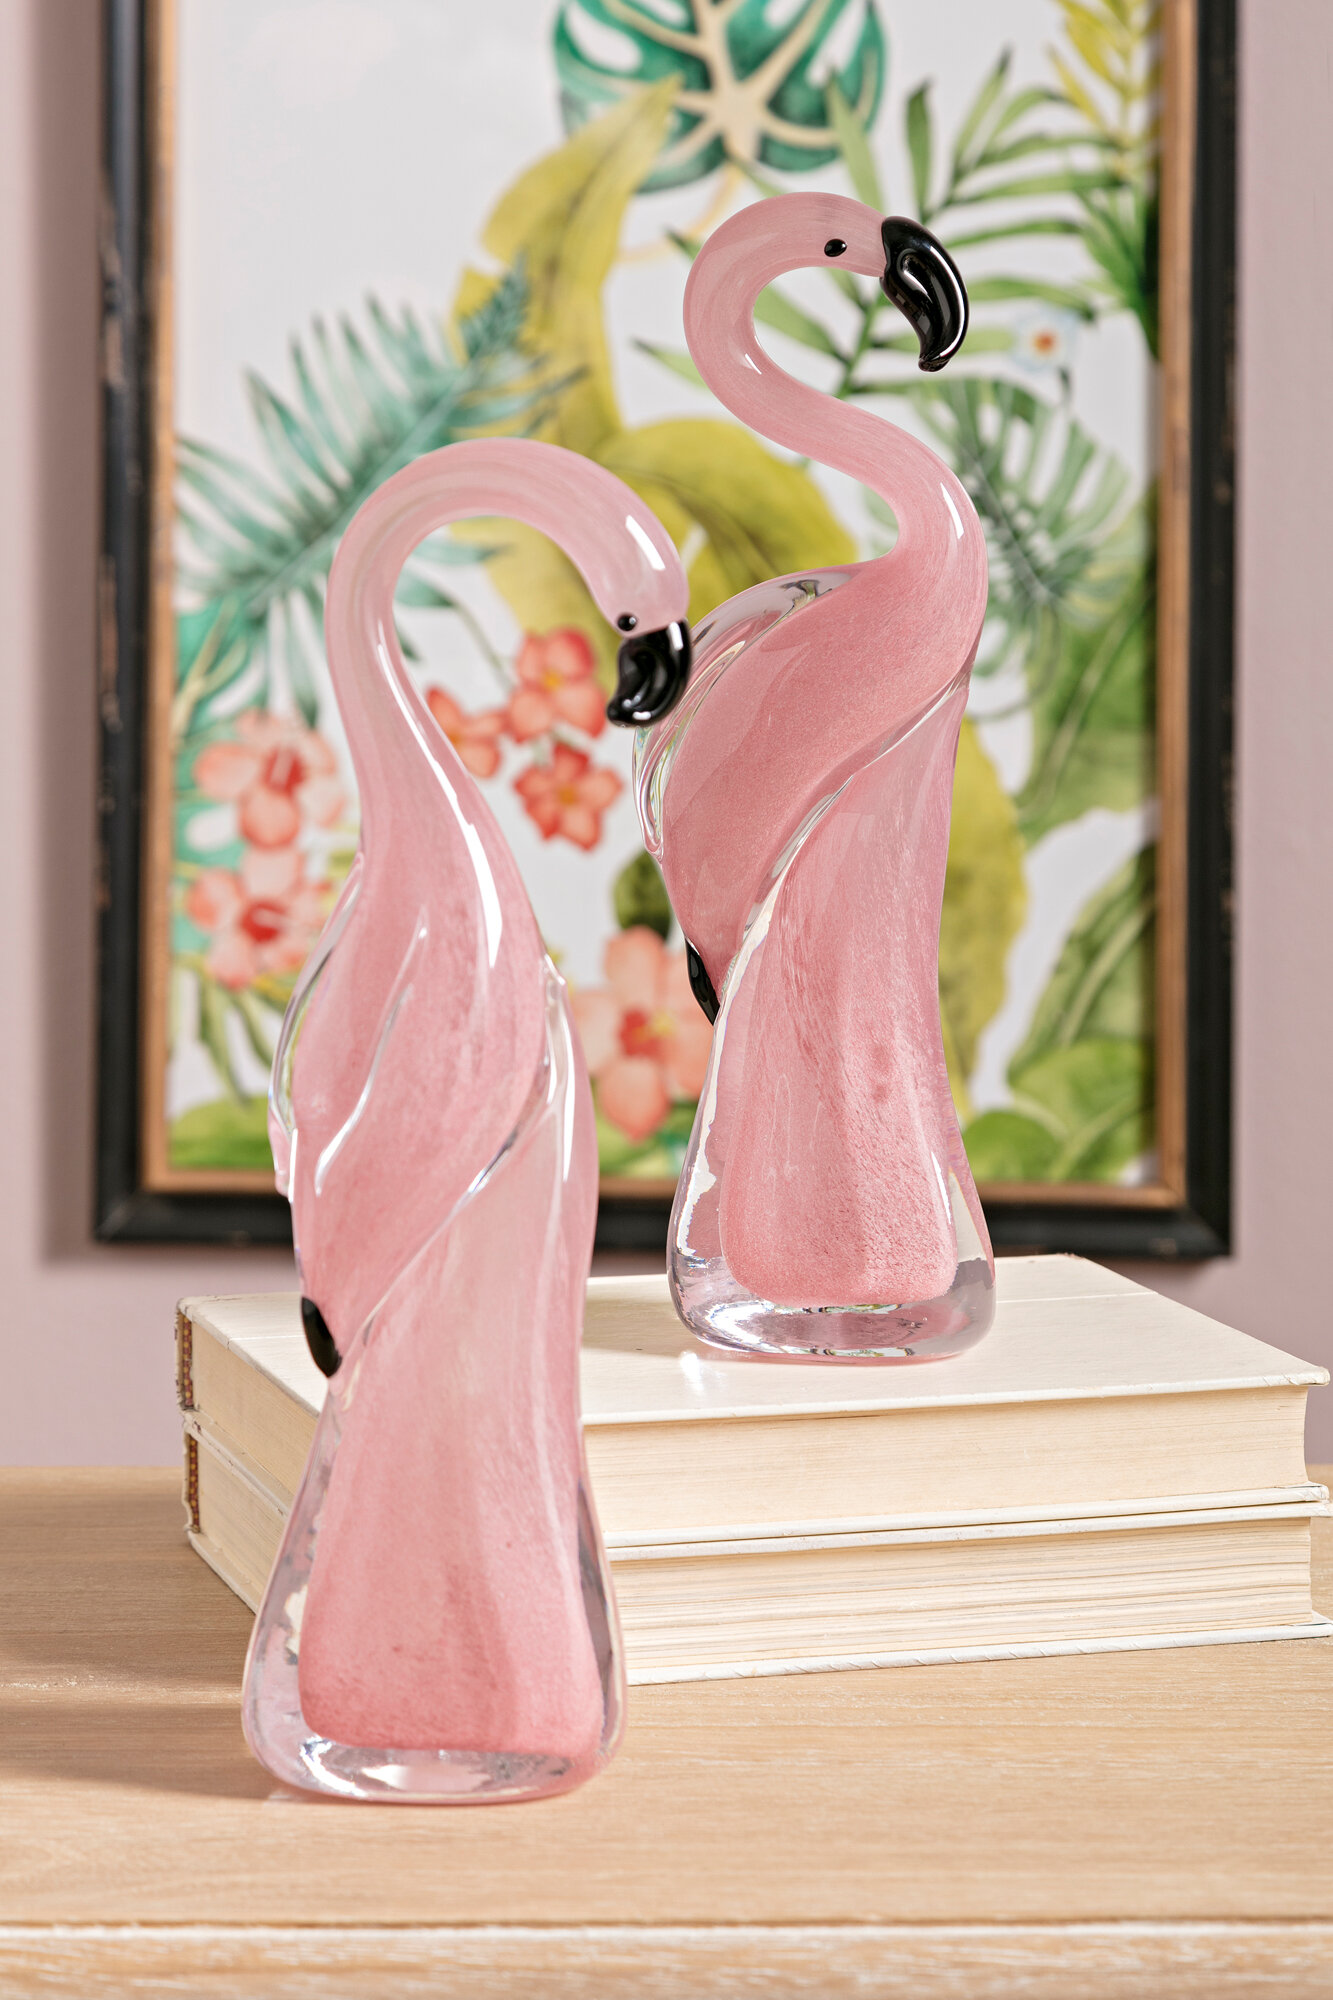 Tropical Pink Flamingo Glass Decor Art Statue Figurine